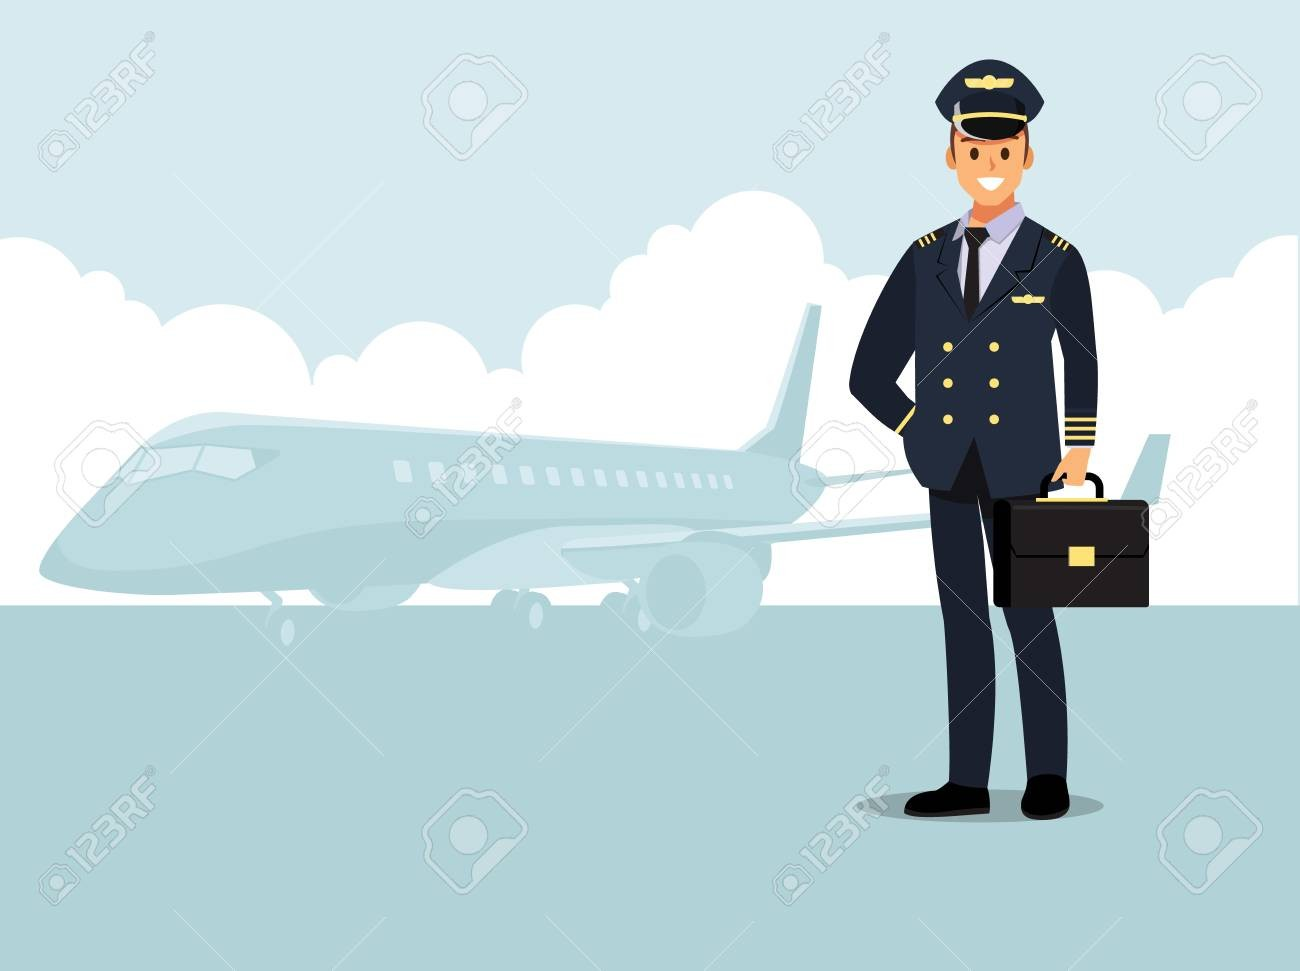 Airplane captain clipart download Within Clip Art Airplane Pilot Clipart Plane Captain 9 | Clip Art download